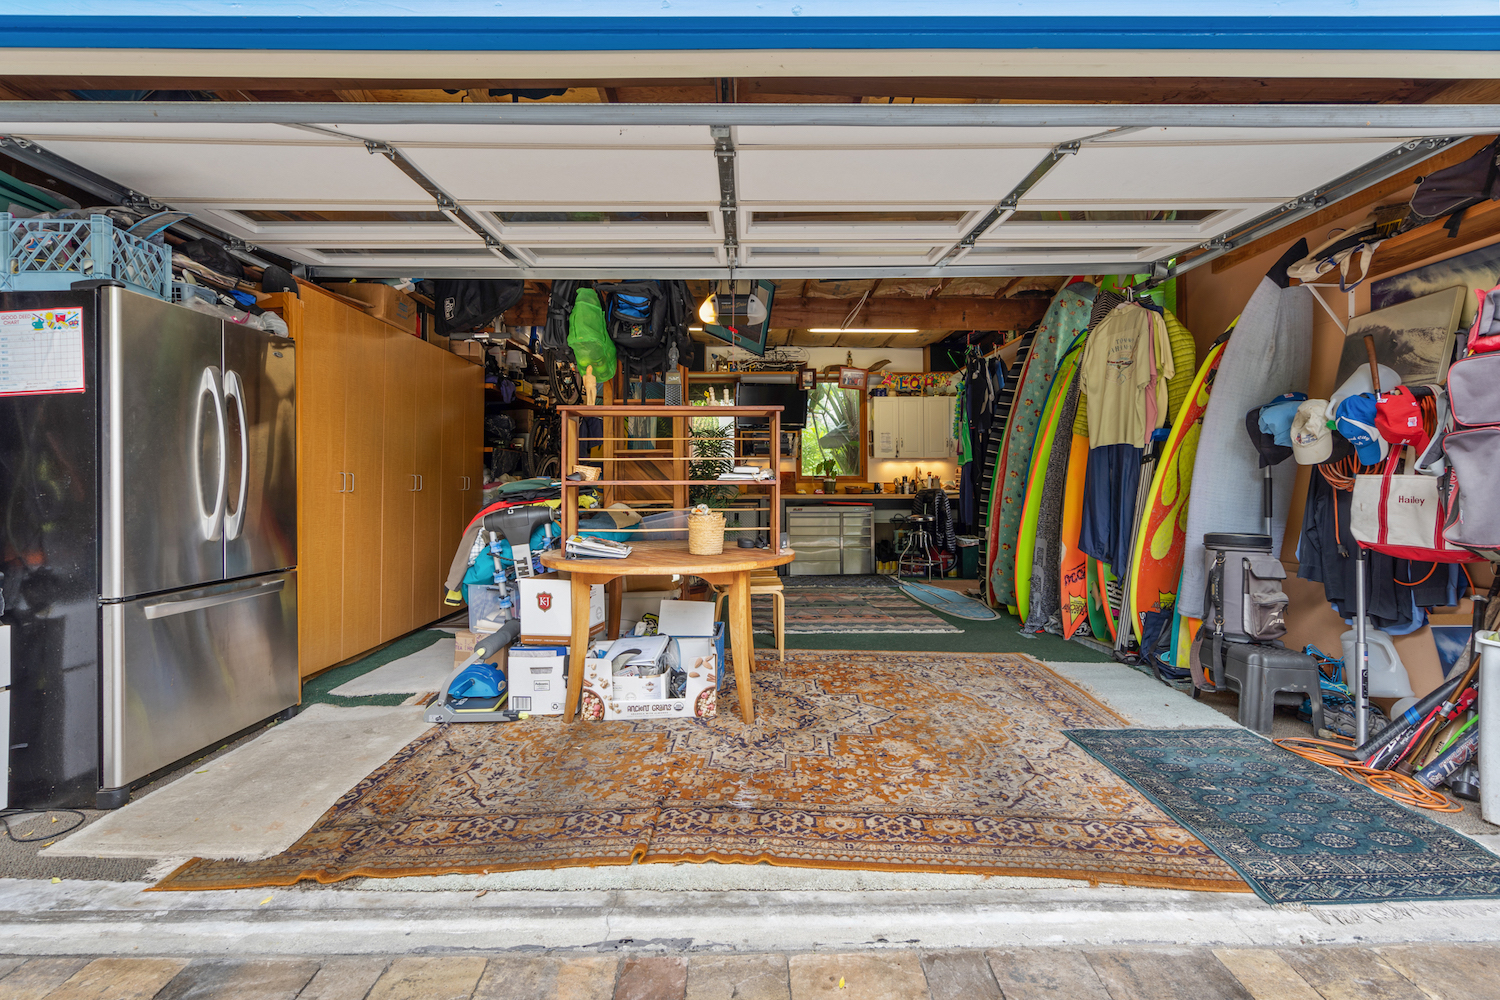 127 bethany curve - garage space/man cave